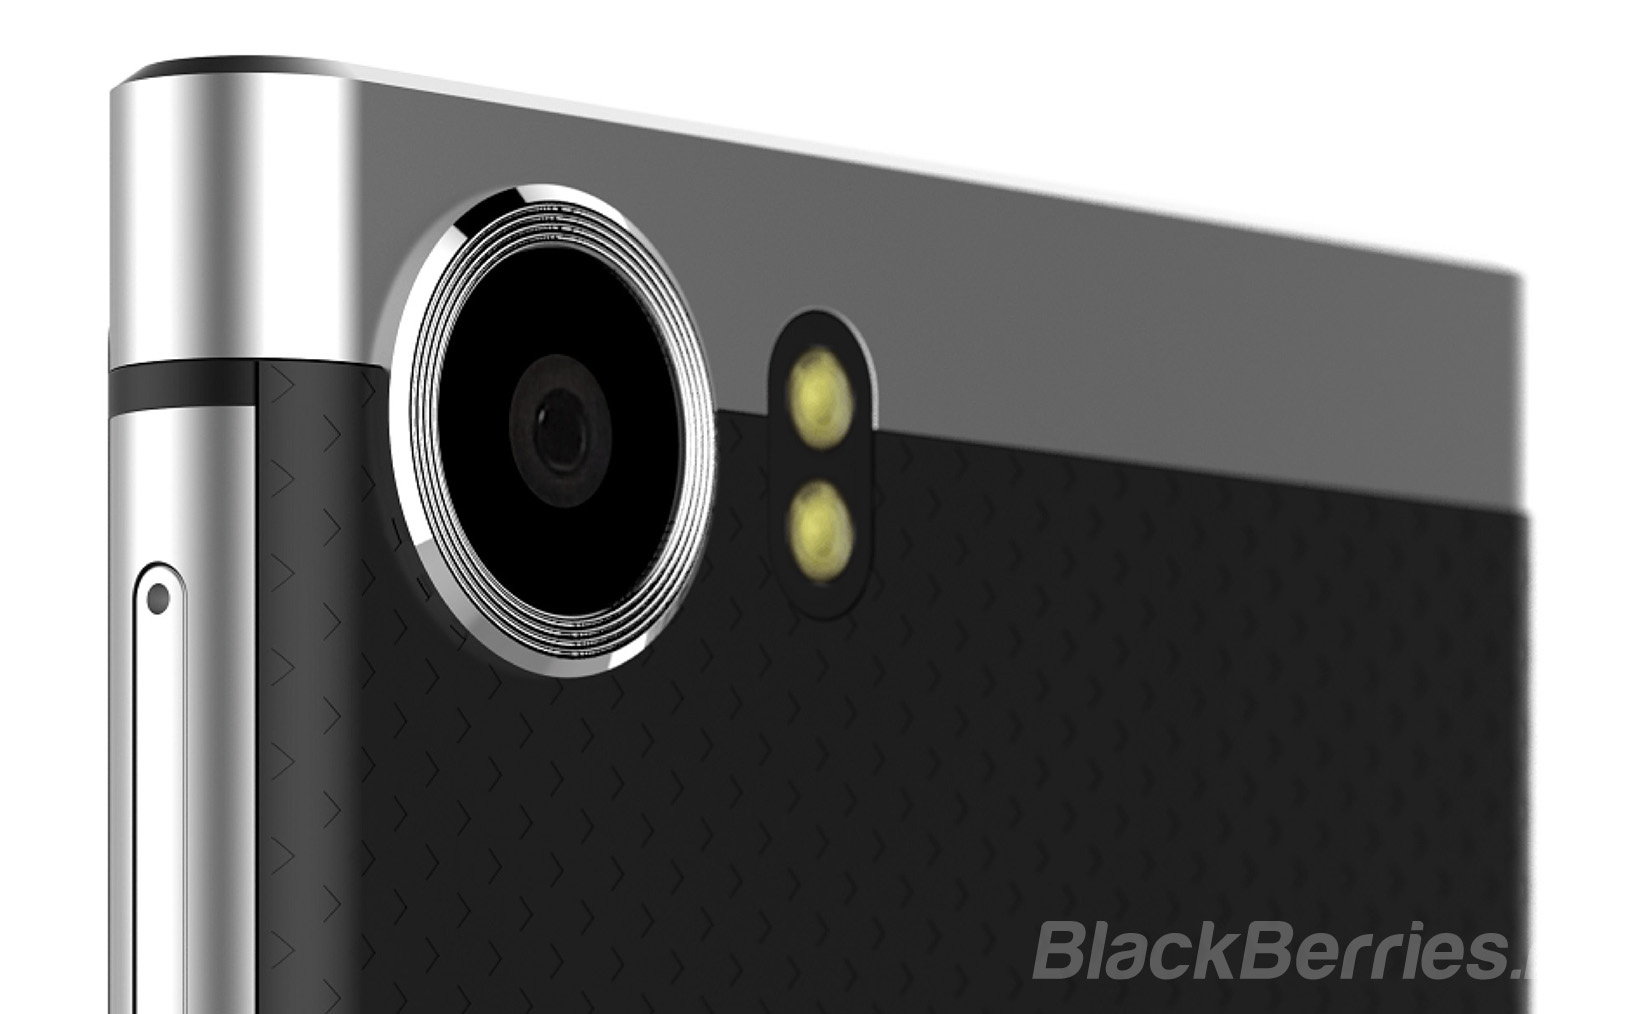 New-BlackBerry-Smartphone_Camera